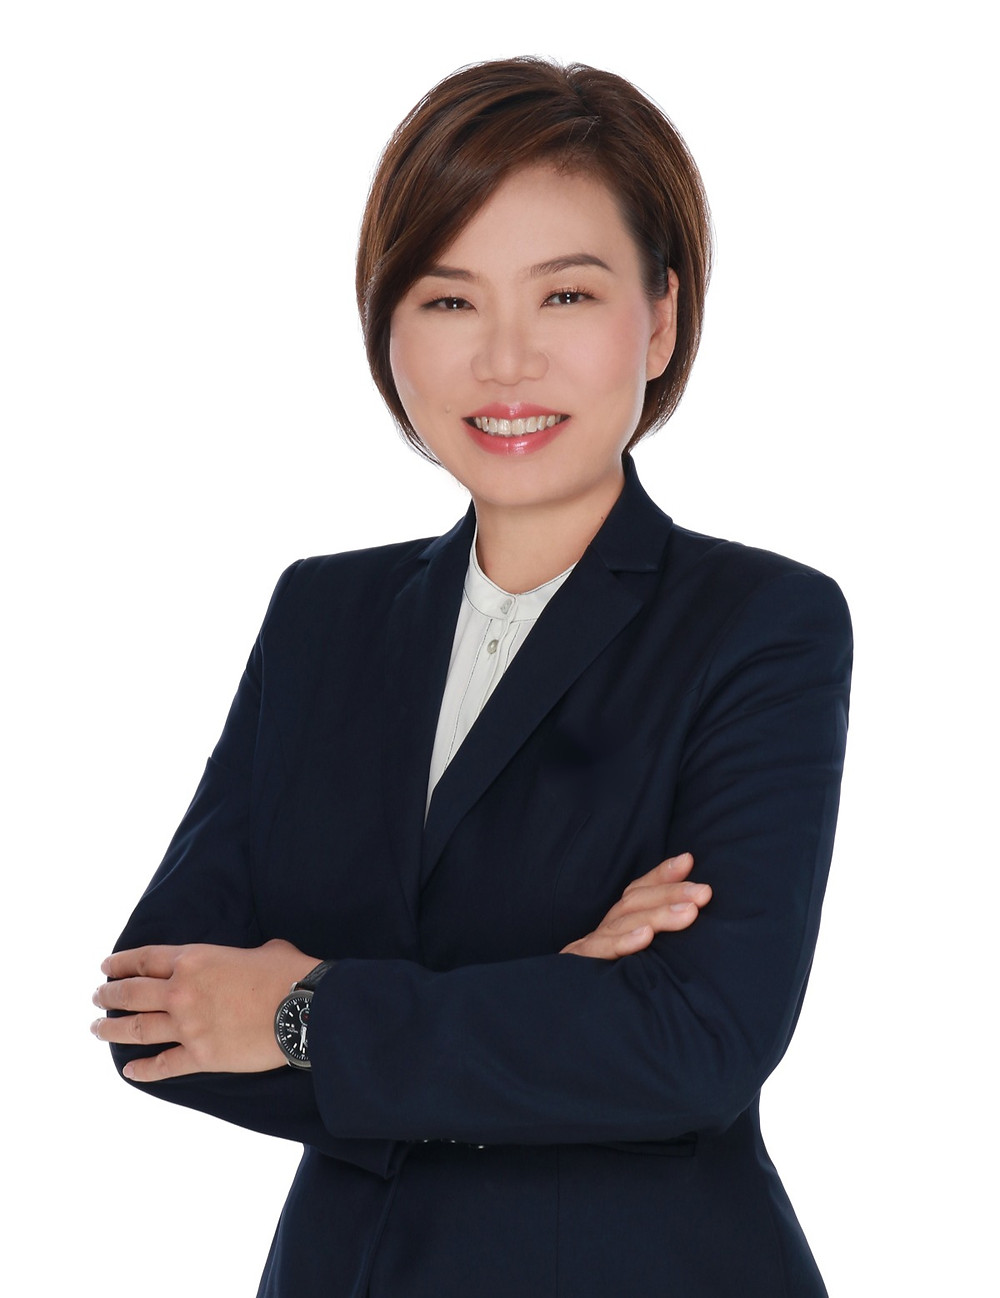 women in real estate, female leader in property